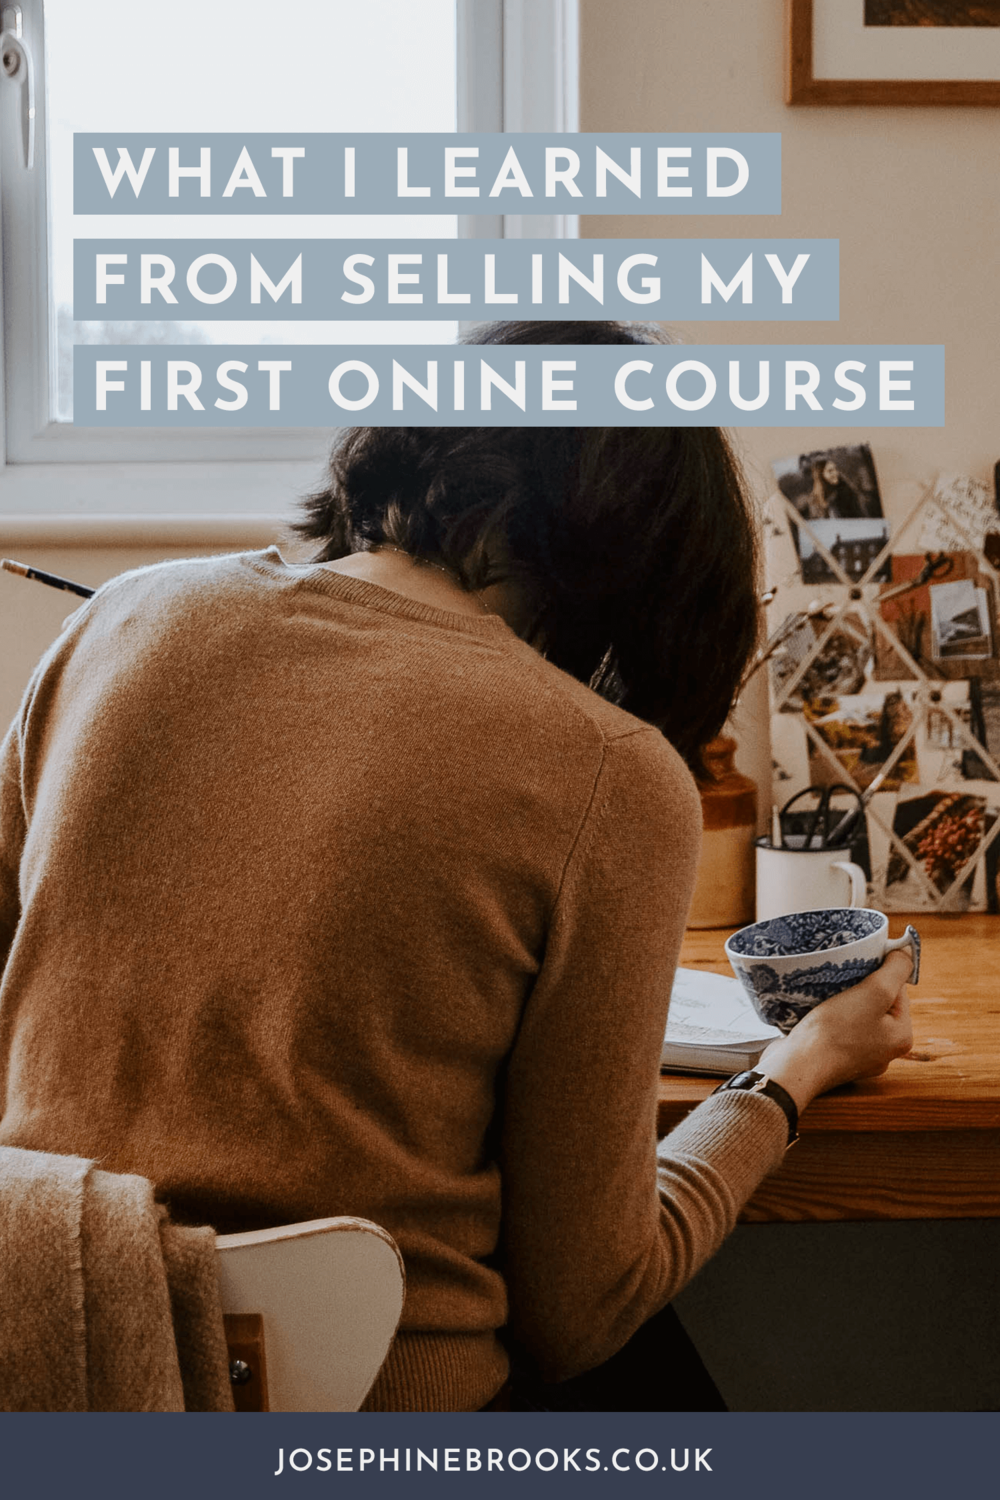 What I learned from selling my first online course